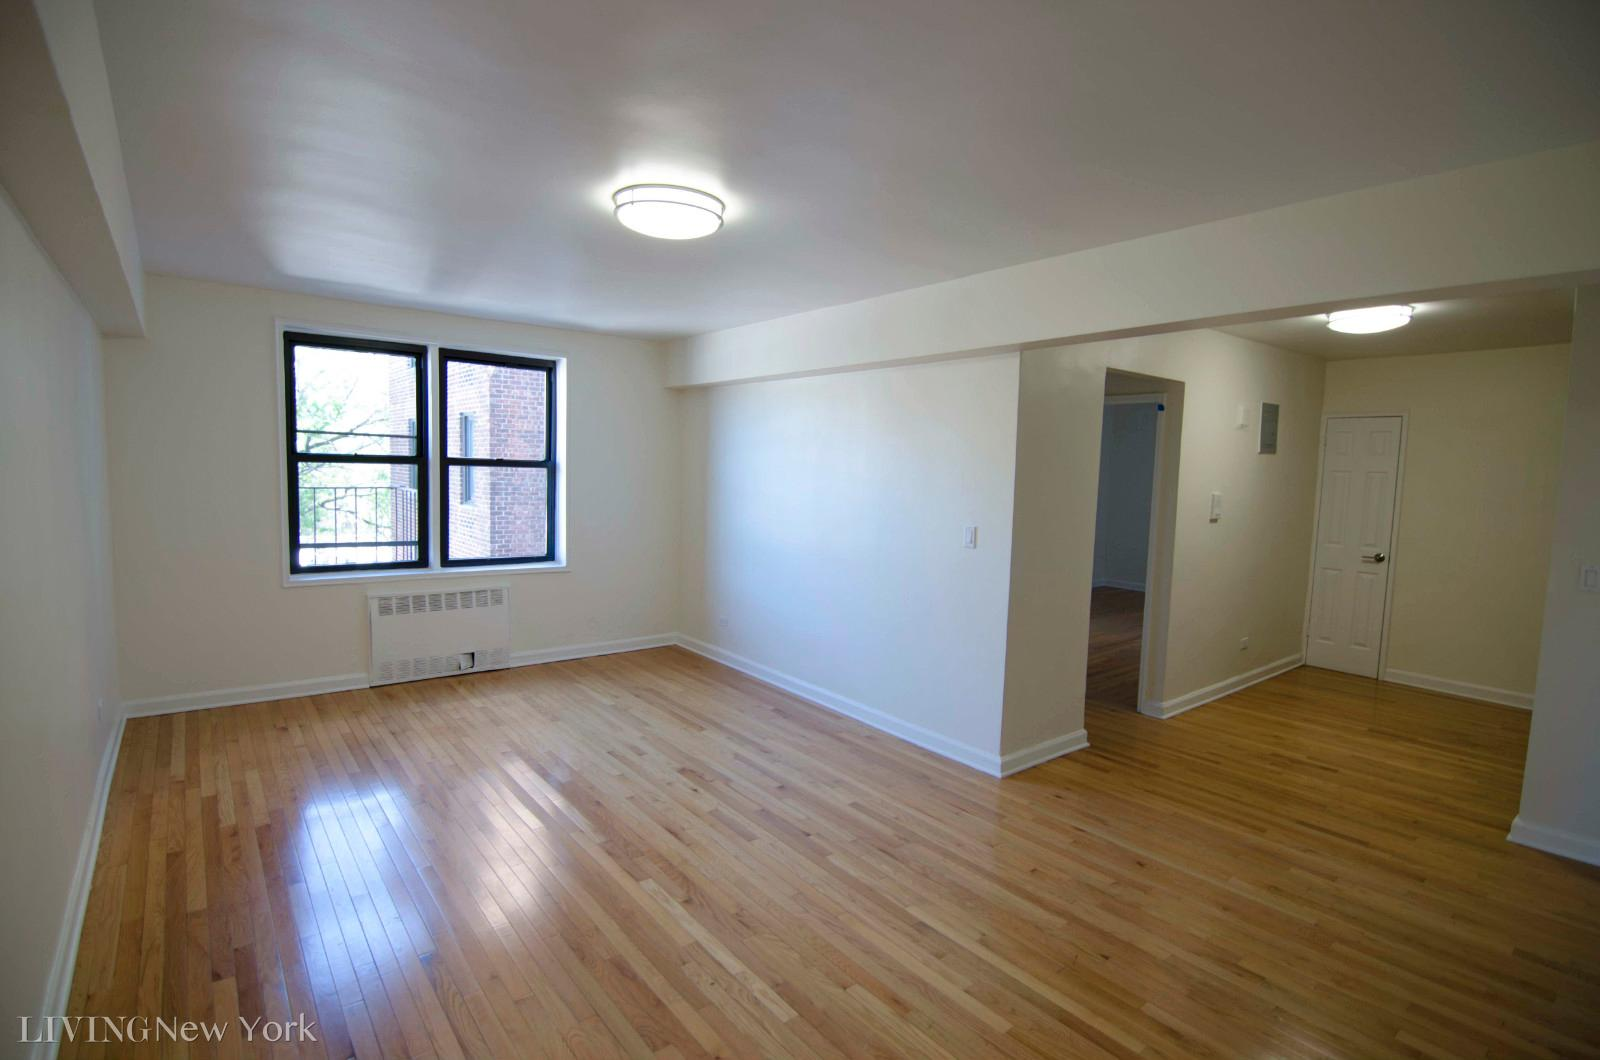 39-89 50th Street, Apt 4G, Queens, New York 11377